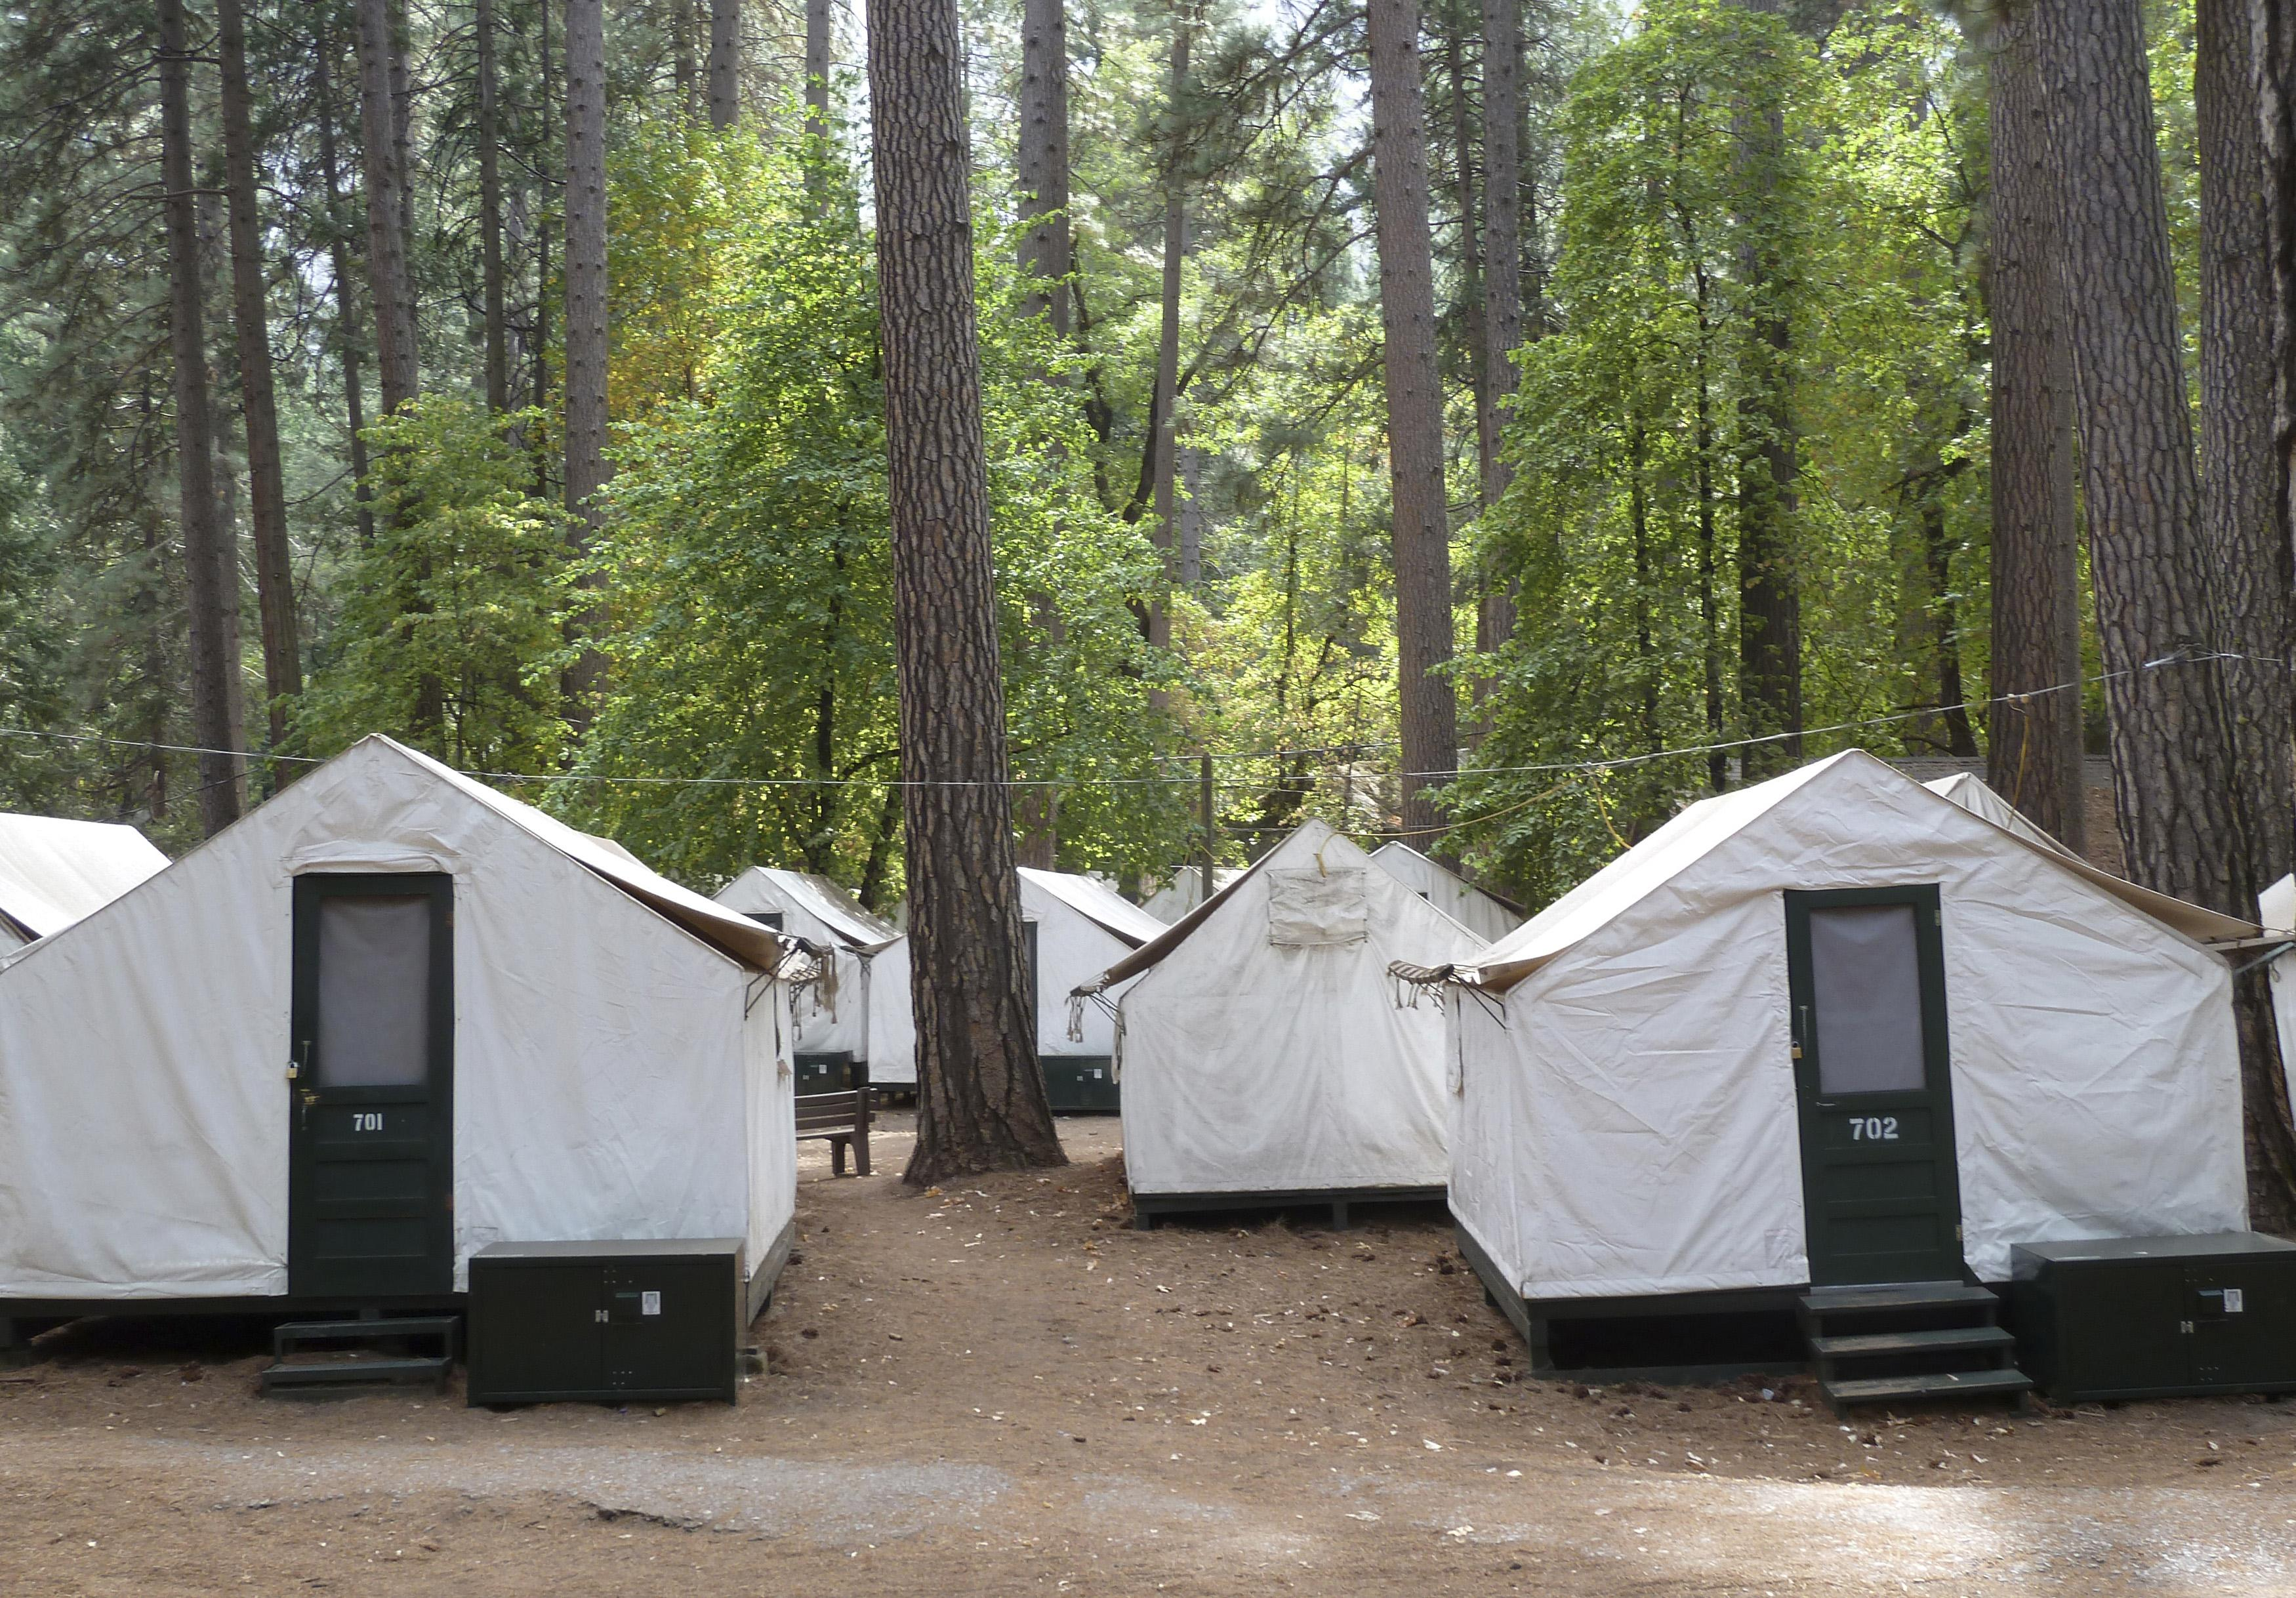 & Cozy Insulation Blamed For Deadly Yosemite Outbreak